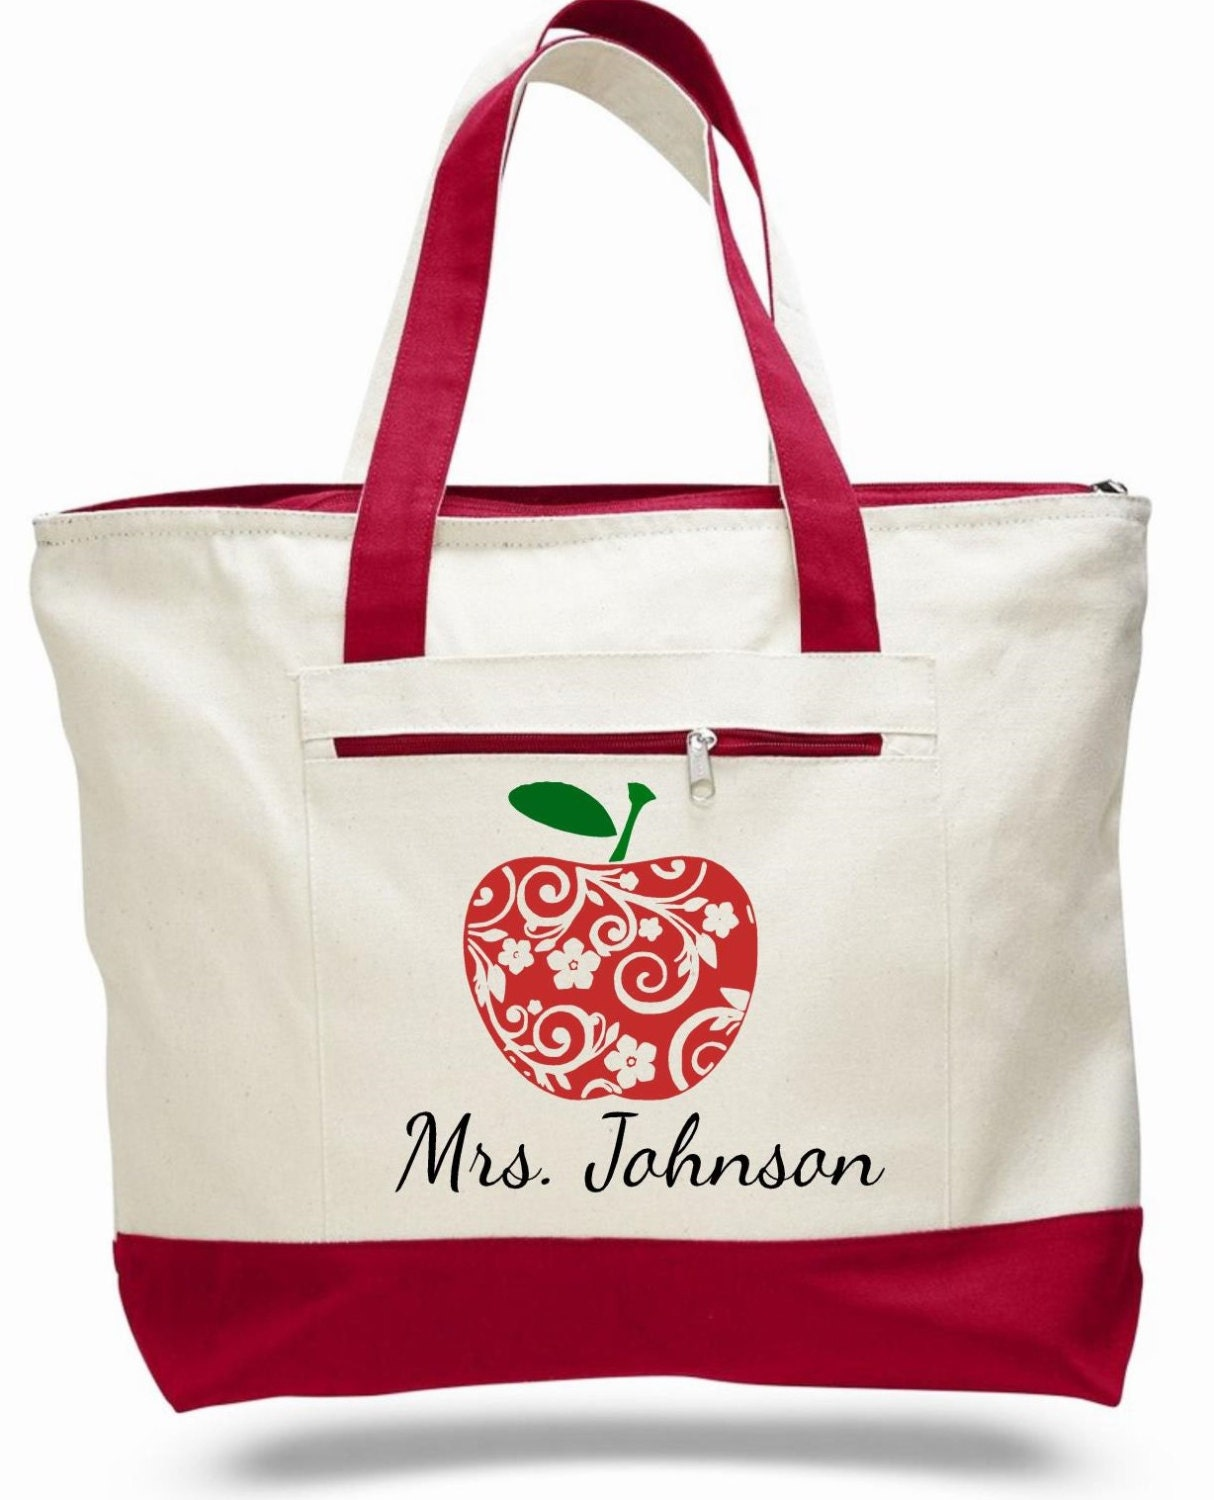 Personalized tote bag | Etsy